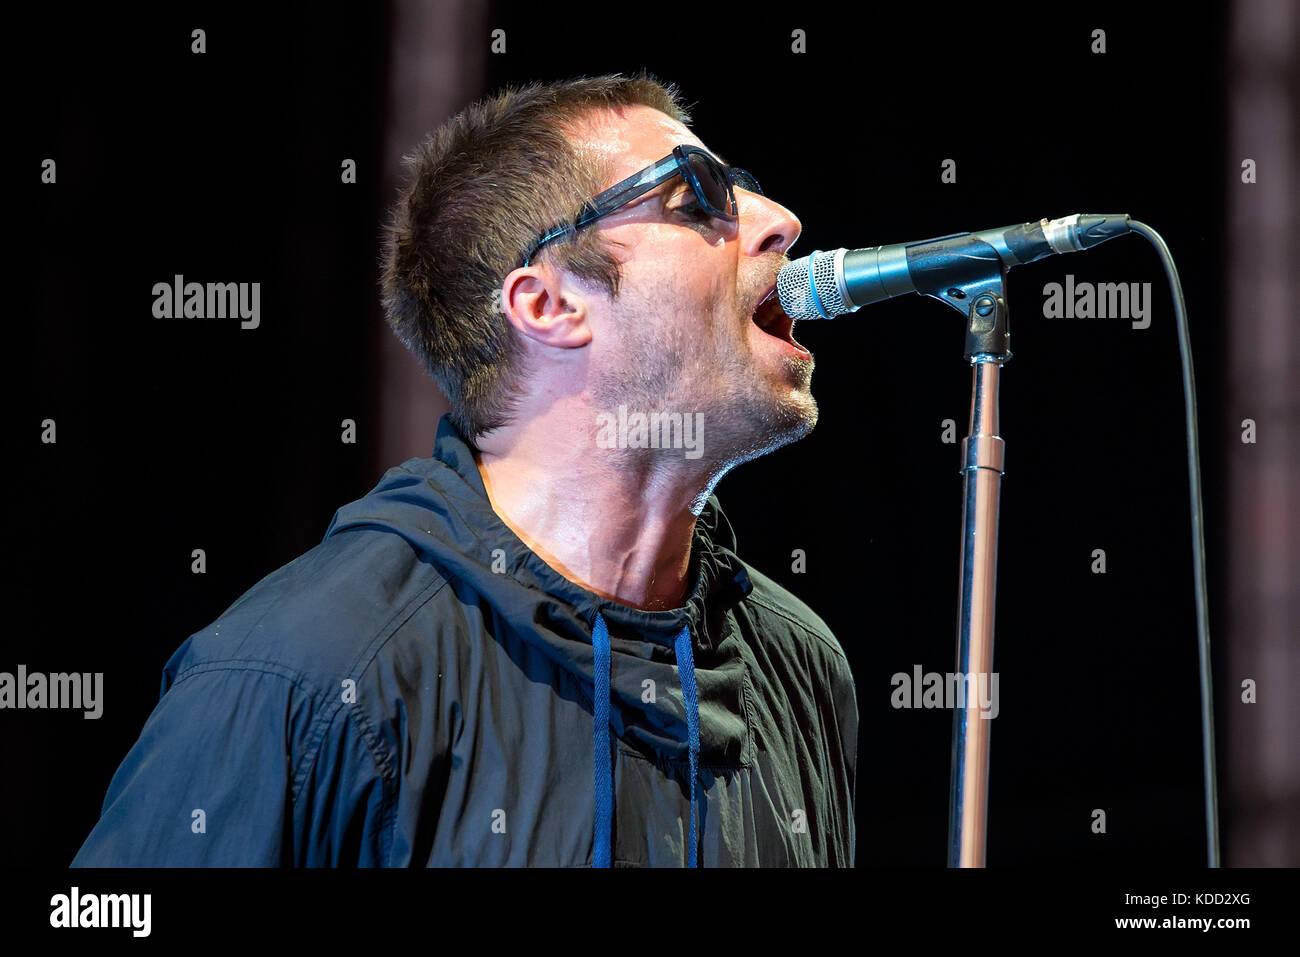 BENICASSIM, SPAIN - JUL 15: Liam Gallagher (musician) performs in concert at FIB Festival on July 15, 2017 in Benicassim, - Stock Image